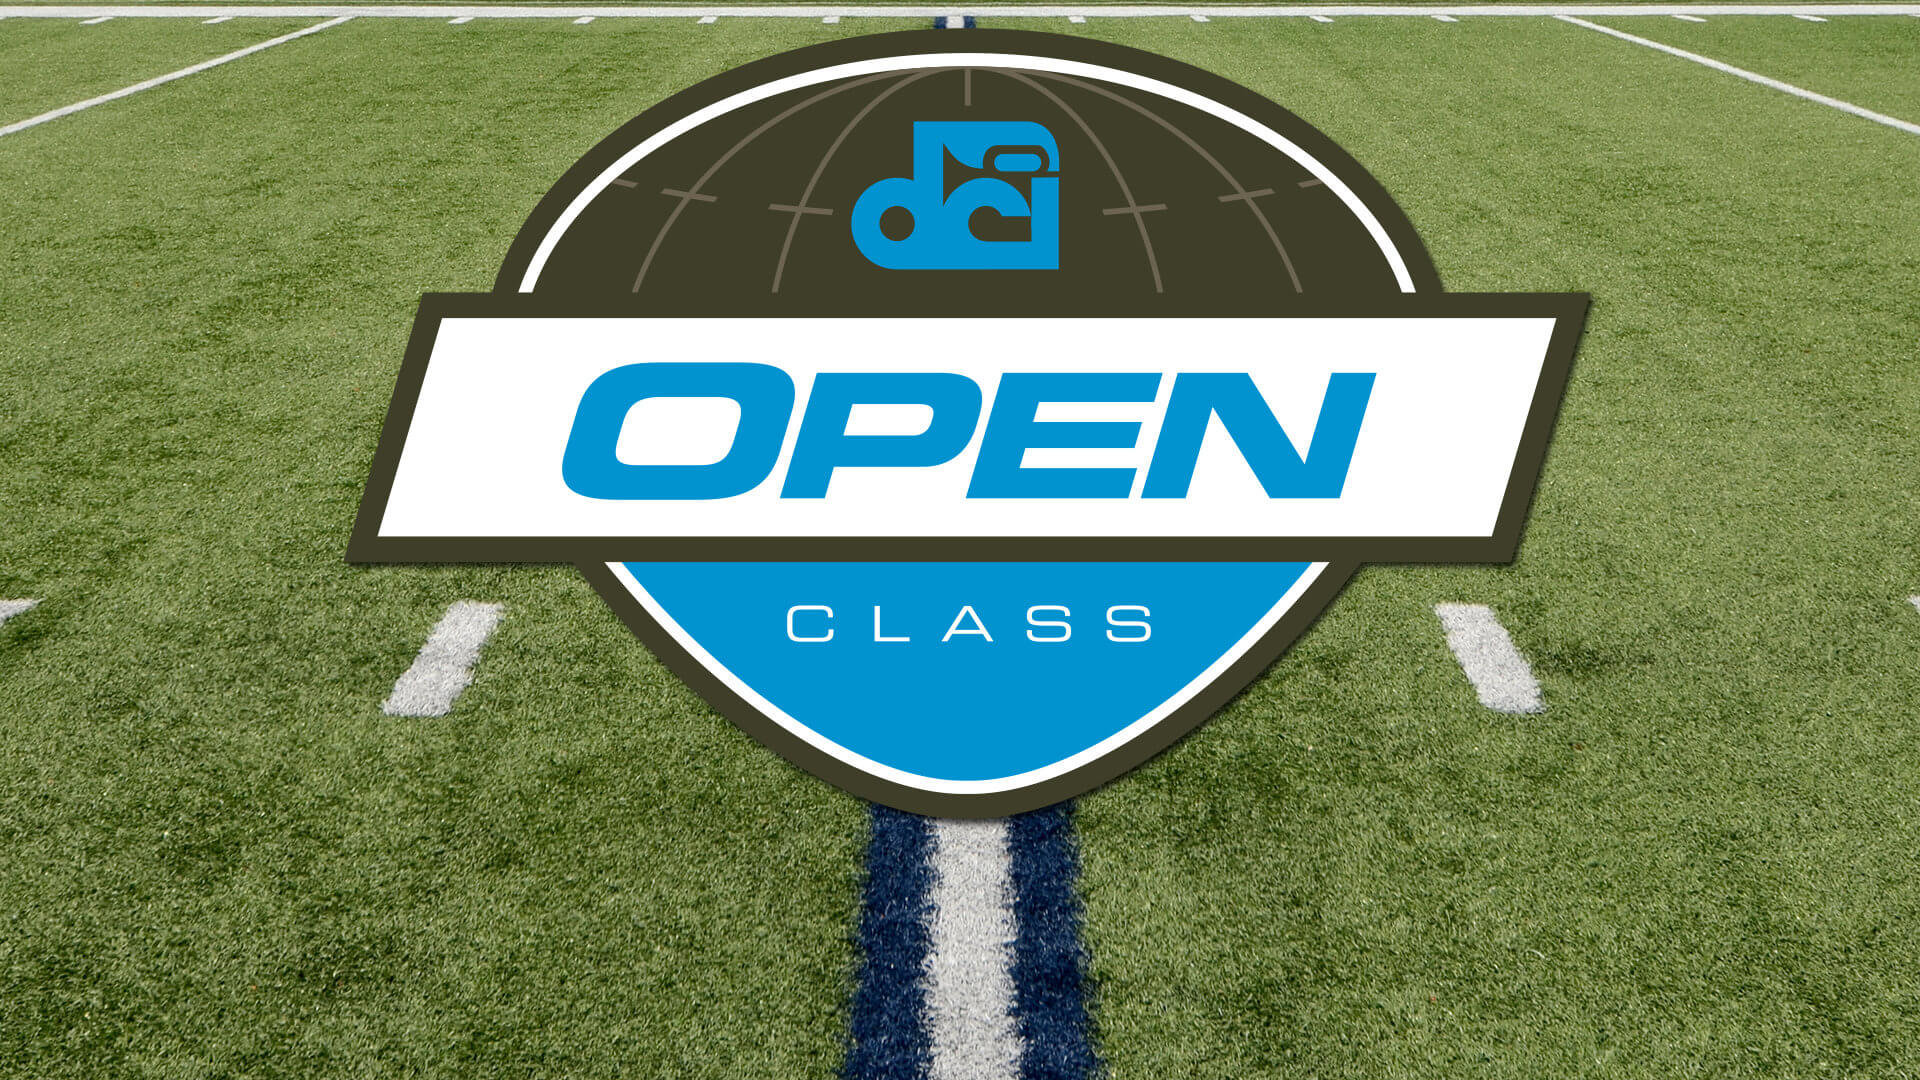 New Open Class corps approved for '16 DCI Tour